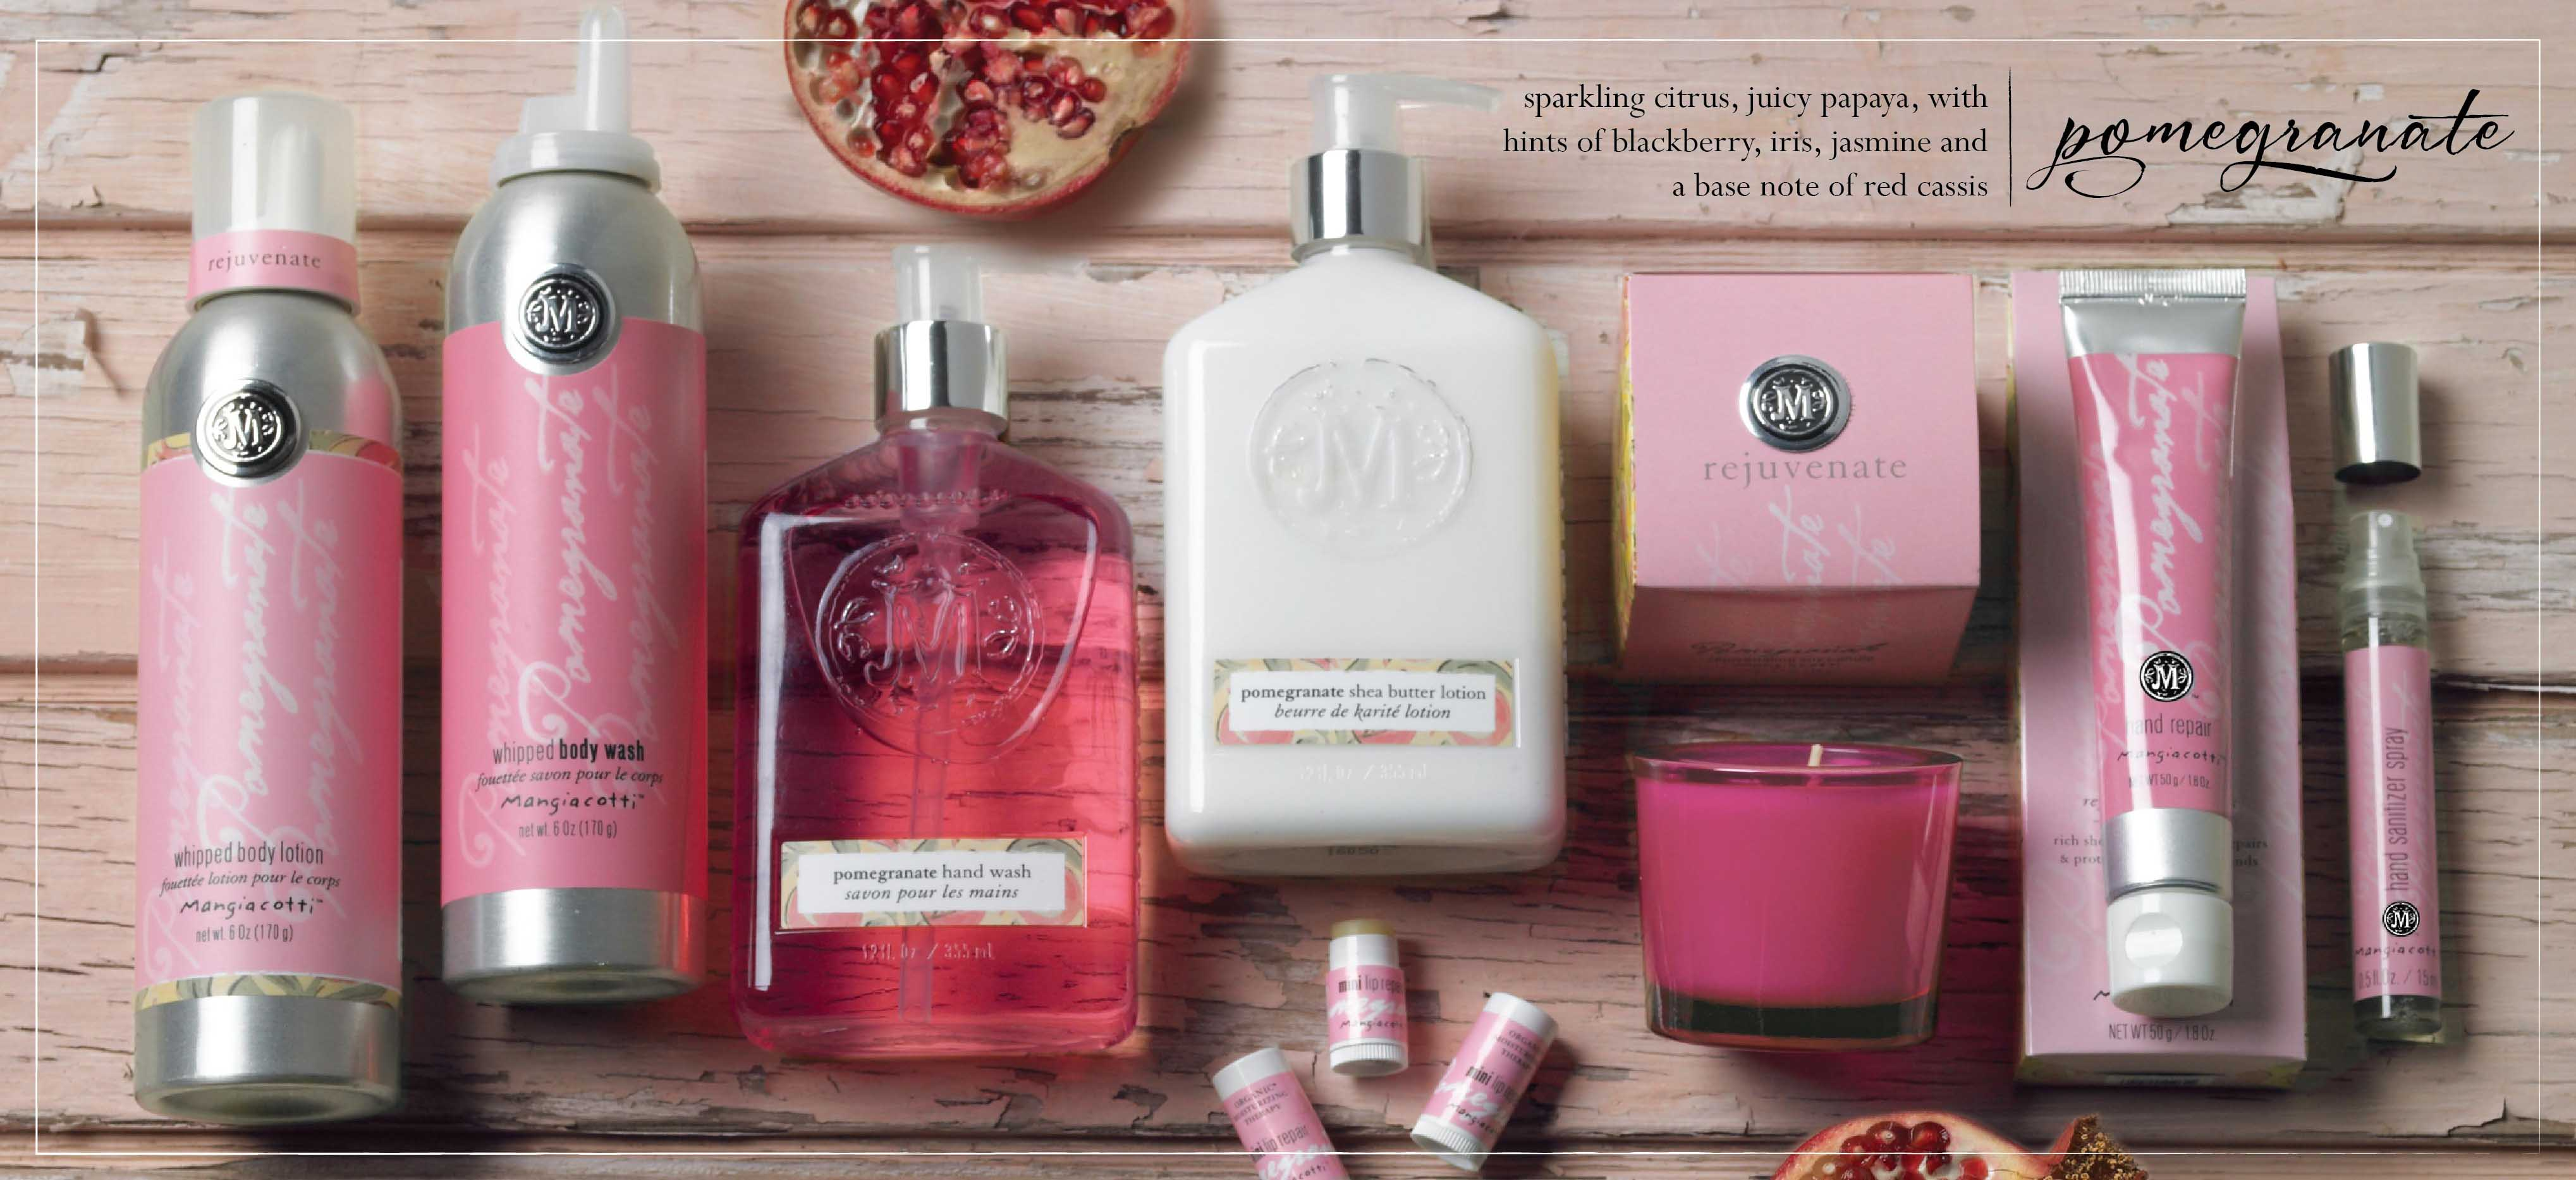 pomegranate-web-fragrance2.jpg